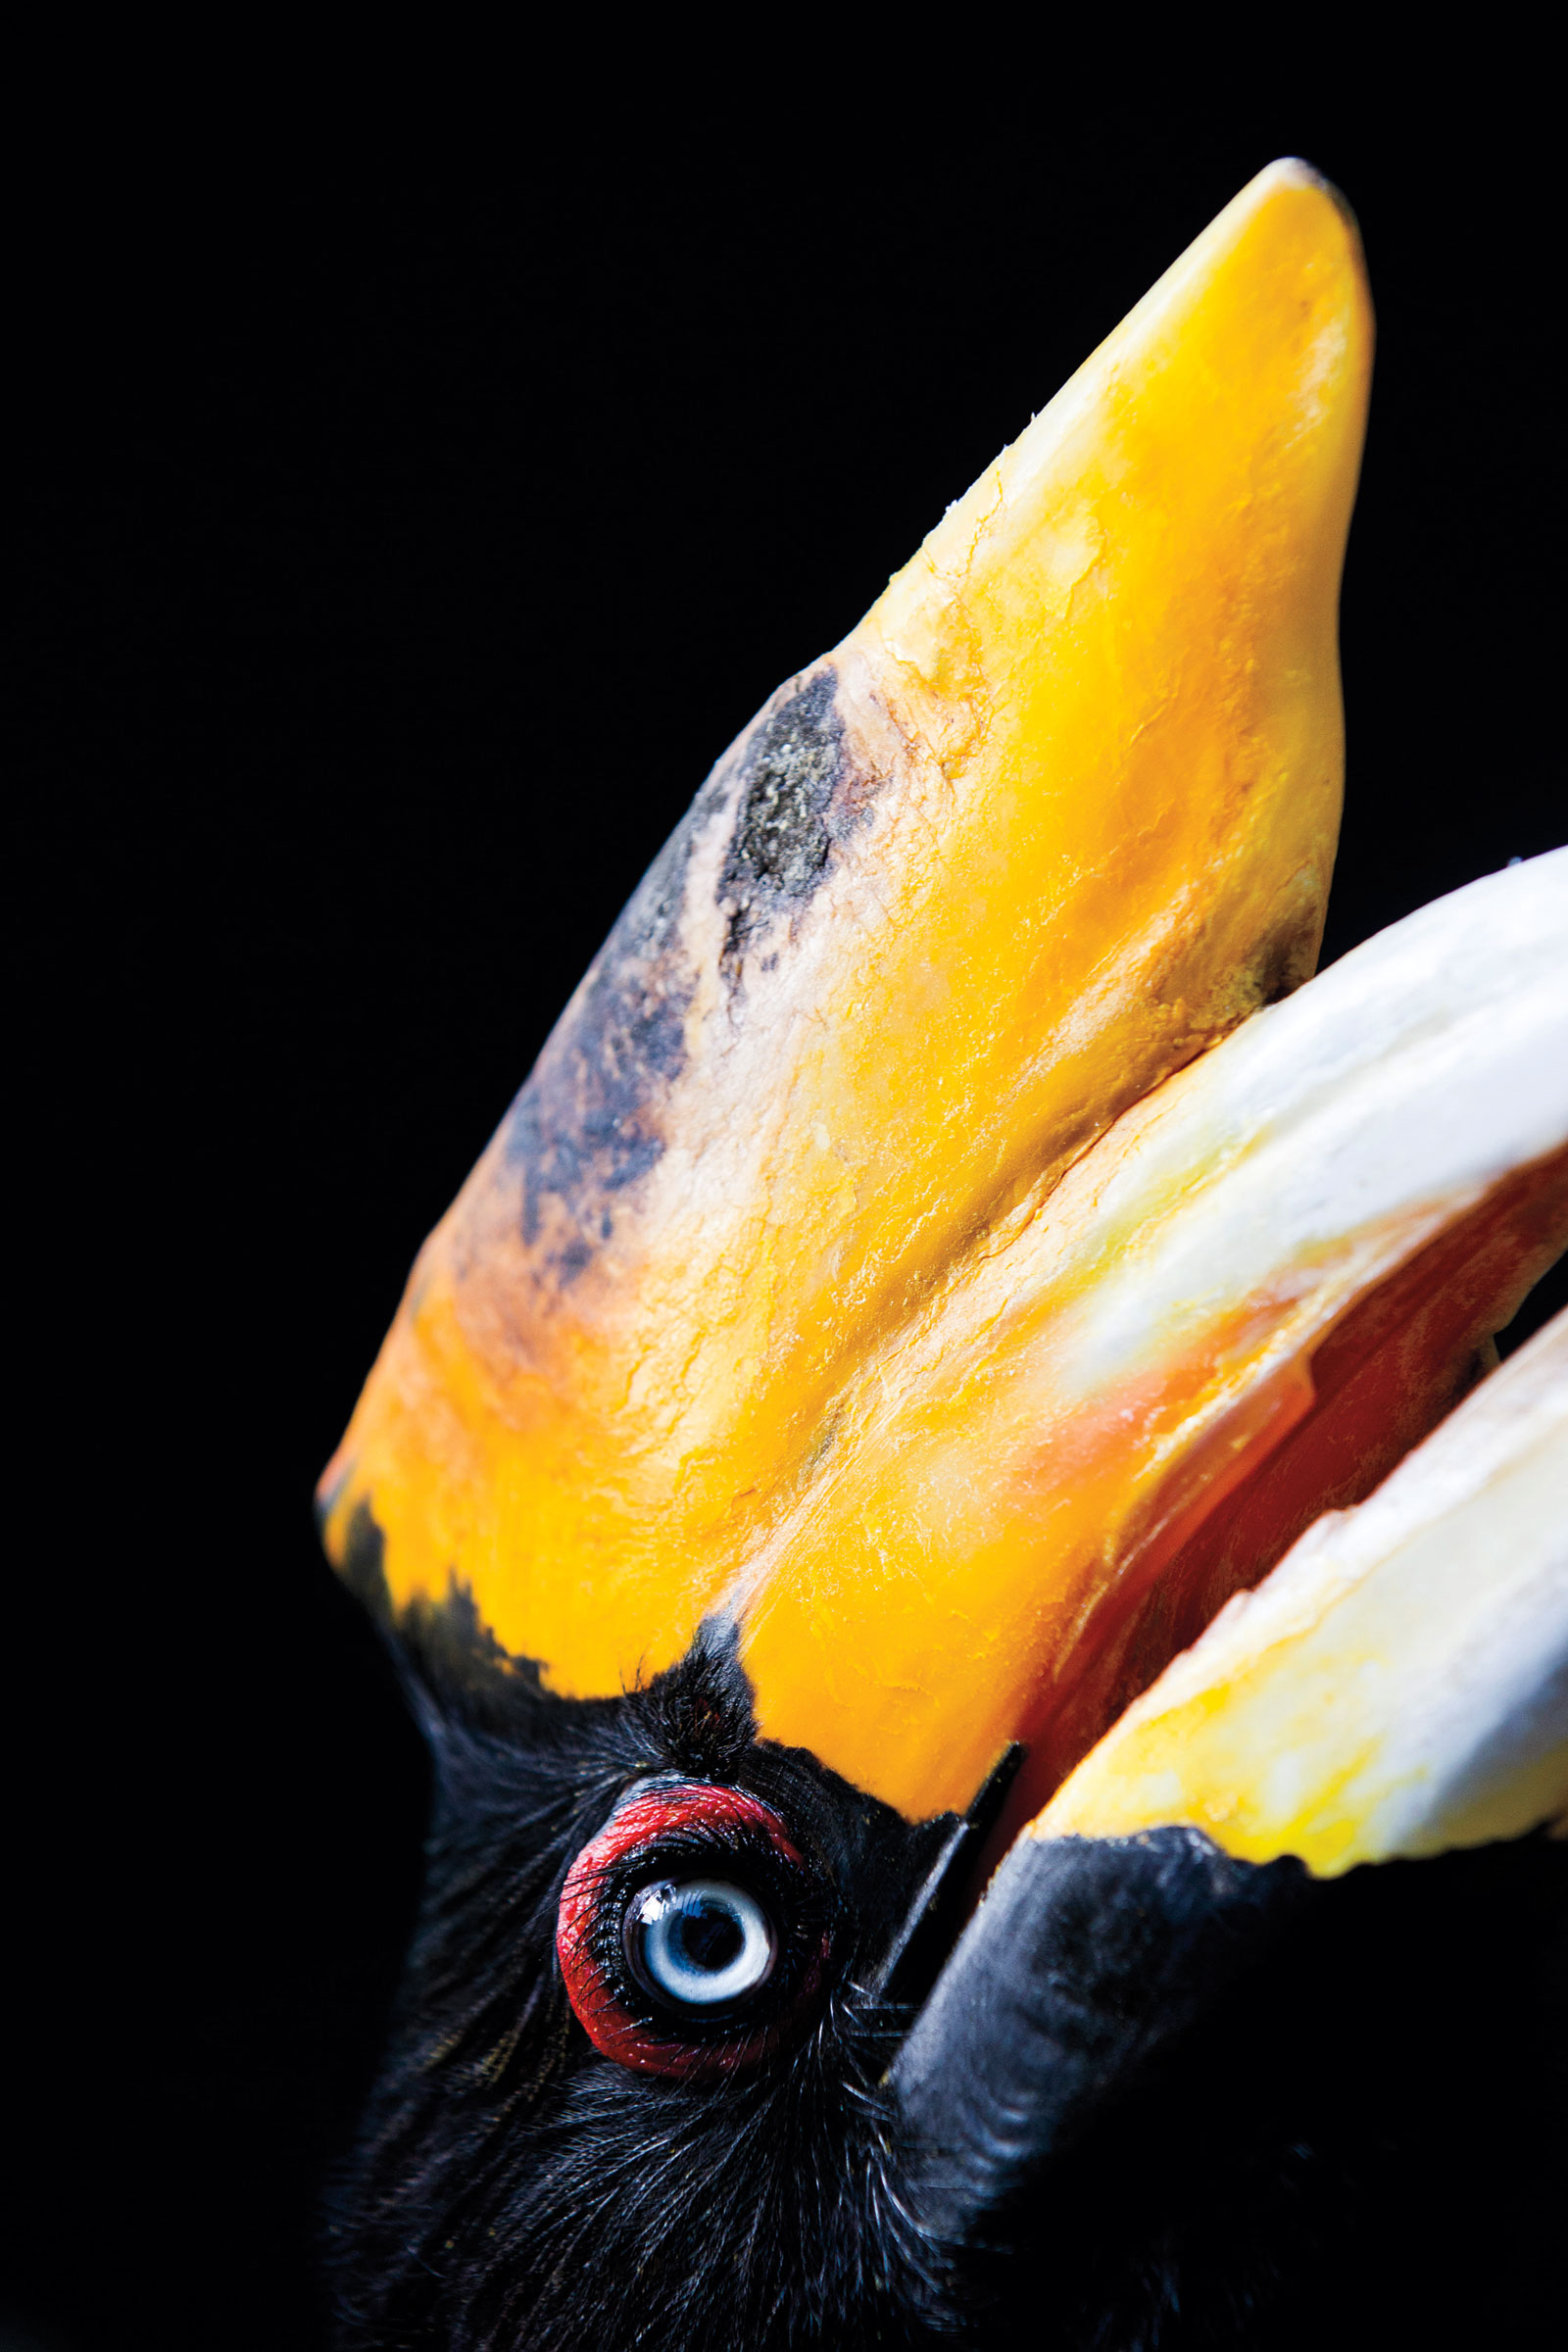 Indonesian populations of Rhinoceros Hornbill have dropped to fewer than 3,000. Though its casque is hollow, poachers mistake it for the more valuable (solid-casqued) Helmeted Hornbill. Paul Hilton